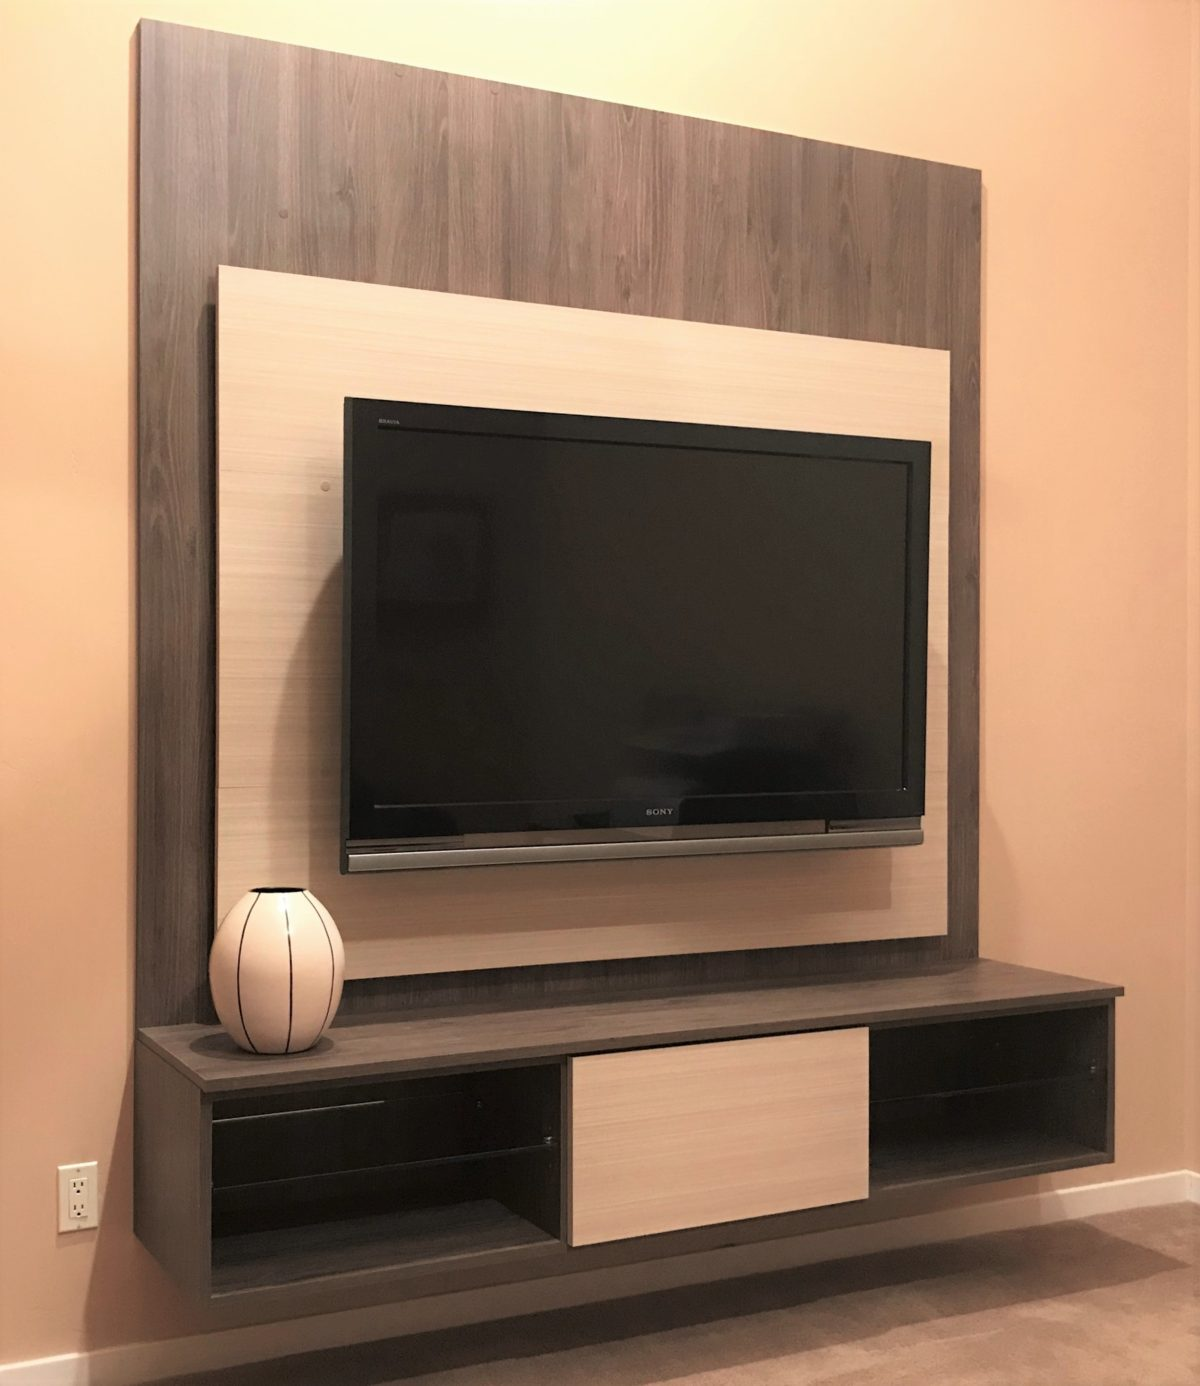 Modern Floating Entertainment Center Well Designed Wall Unit Organization System